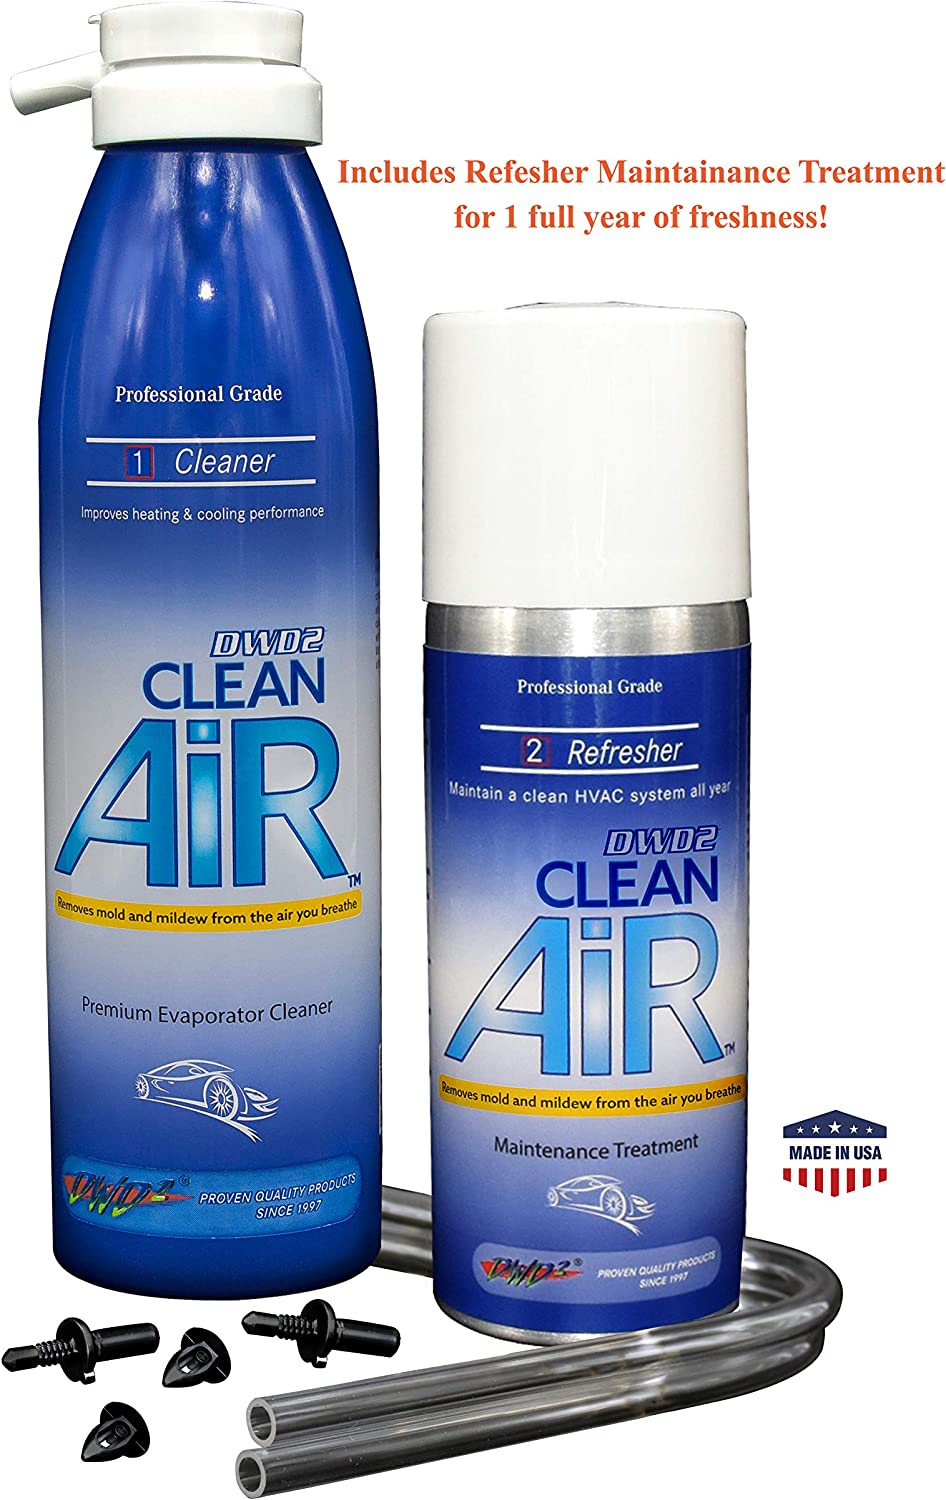 DWD2 Clean AIR Premium Automotive Foaming AC Evaporator Coil Cleaner & Refresher (Unscented) Renew Your air Conditioner!